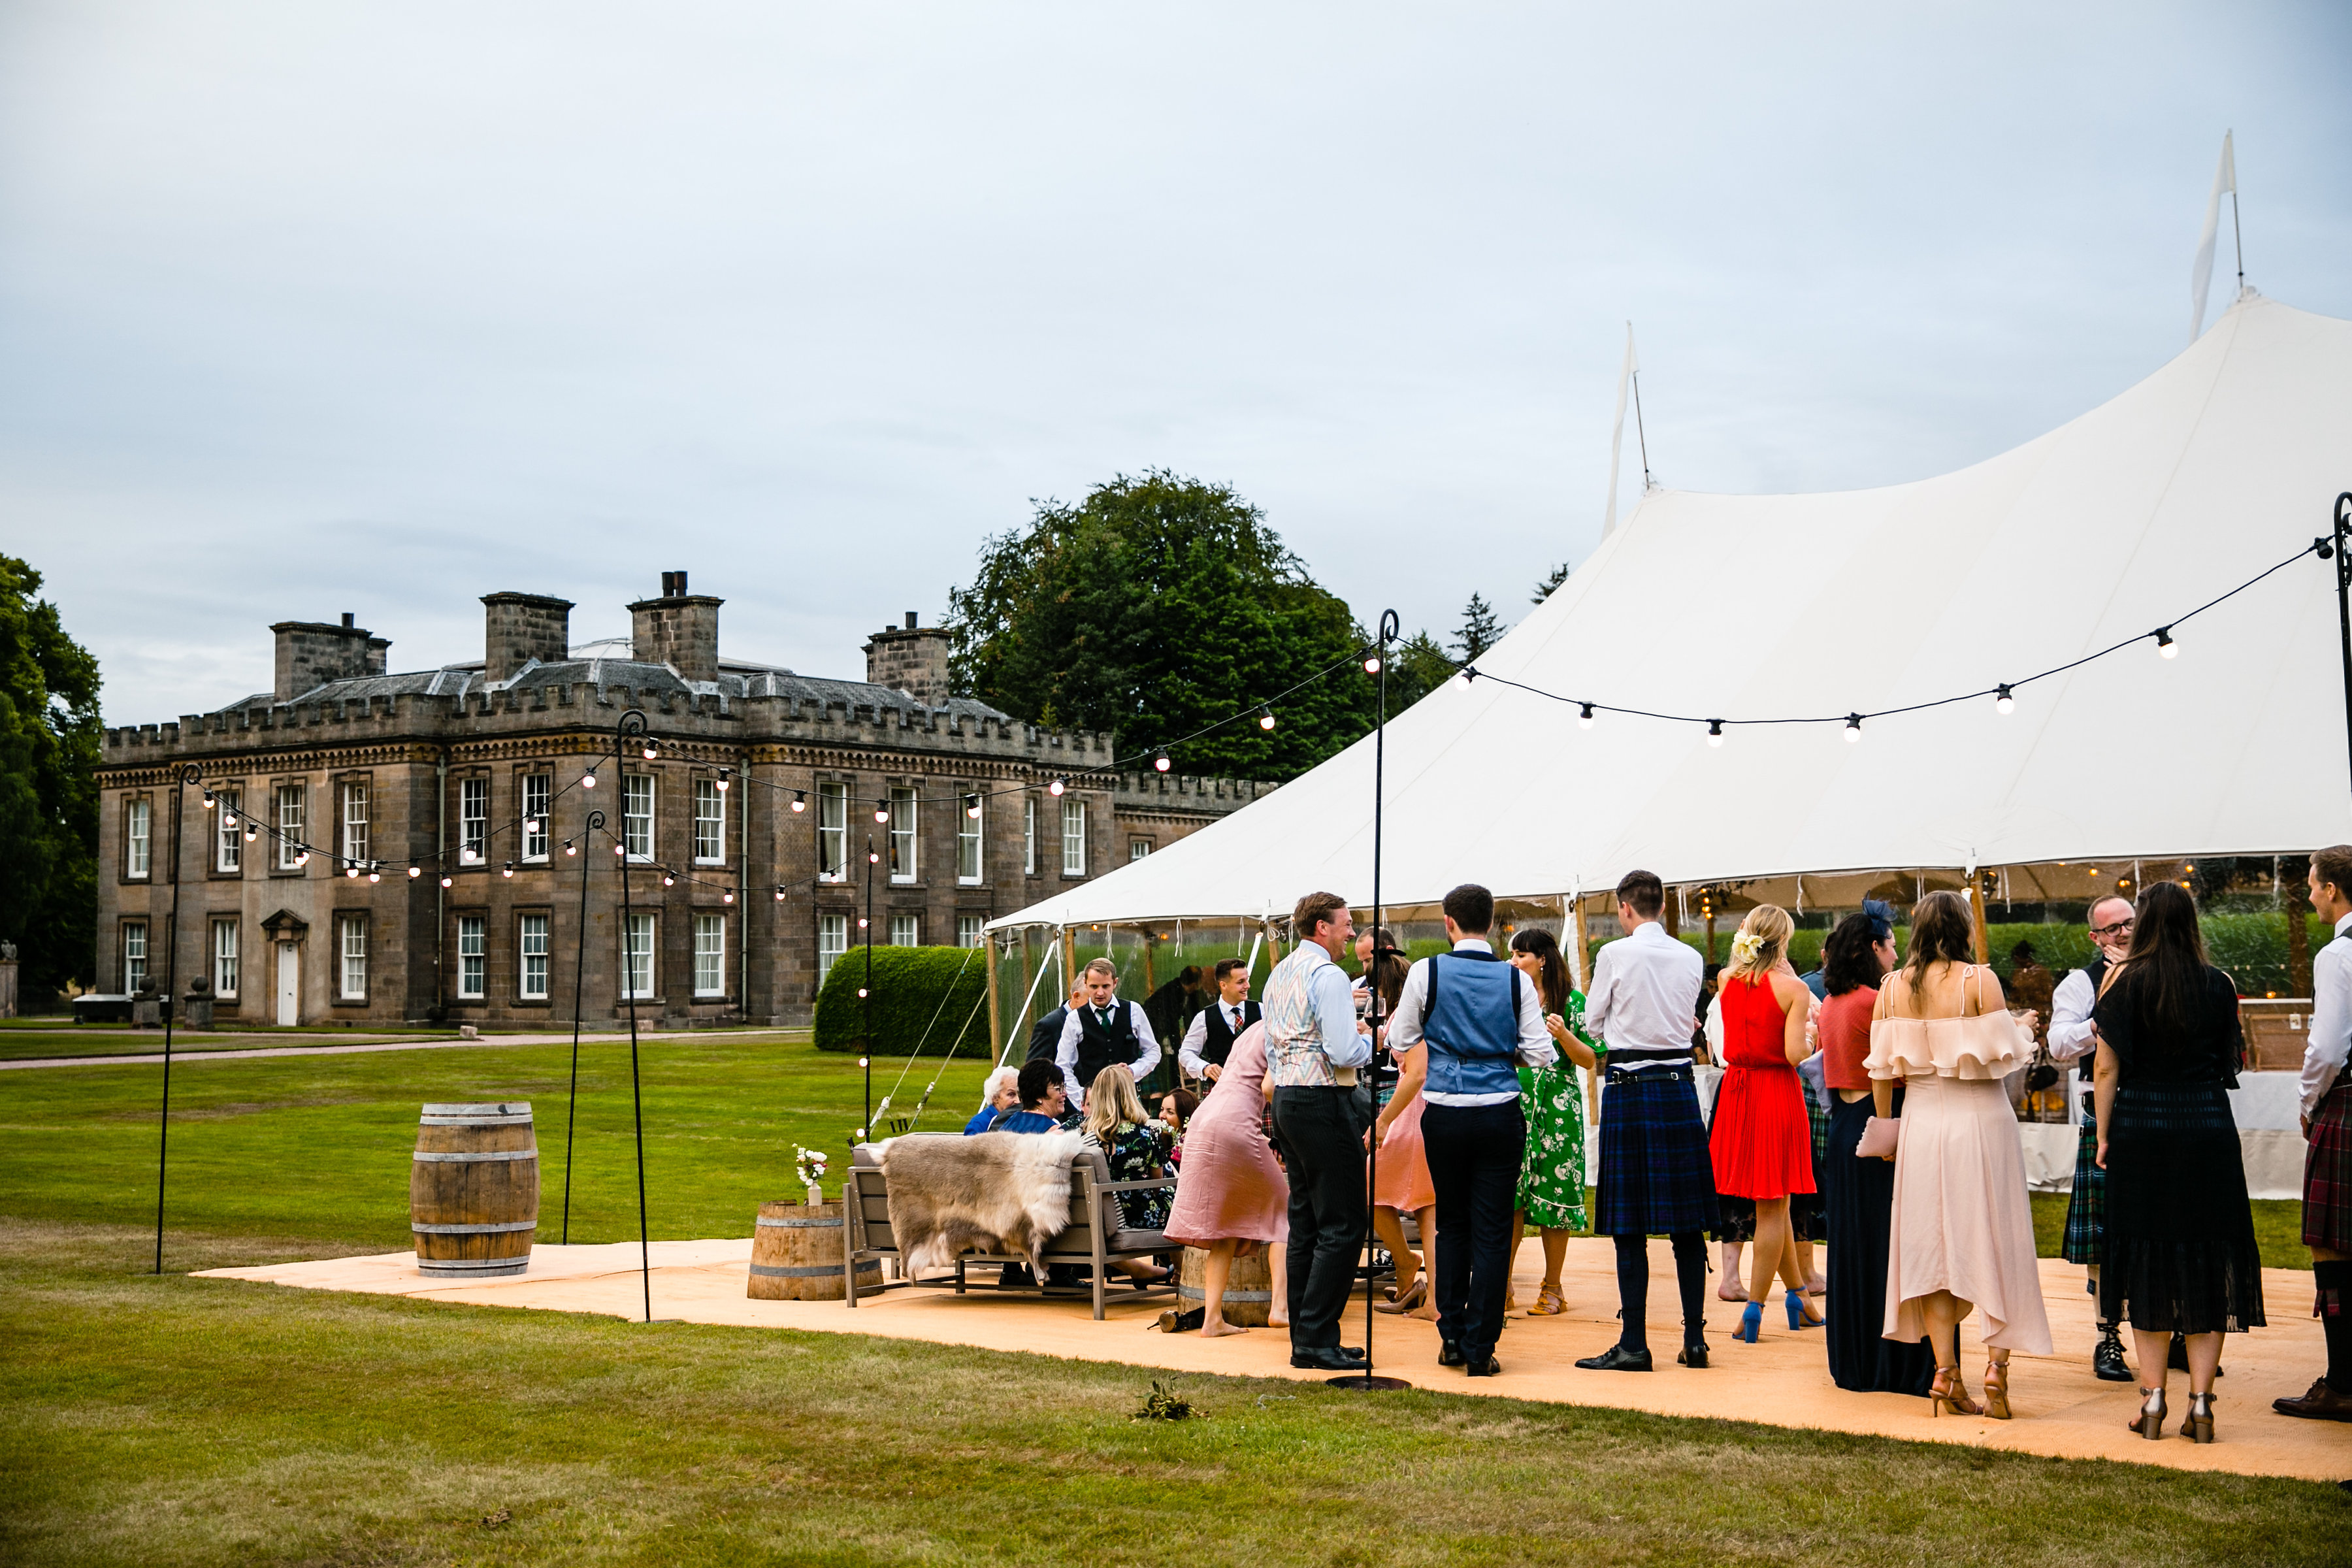 PapaKåta couple Lucy & Tom's Sperry Wedding at Gordon Castle Scotland captured by Helen Abraham Photography- Sperry Tent Exterior